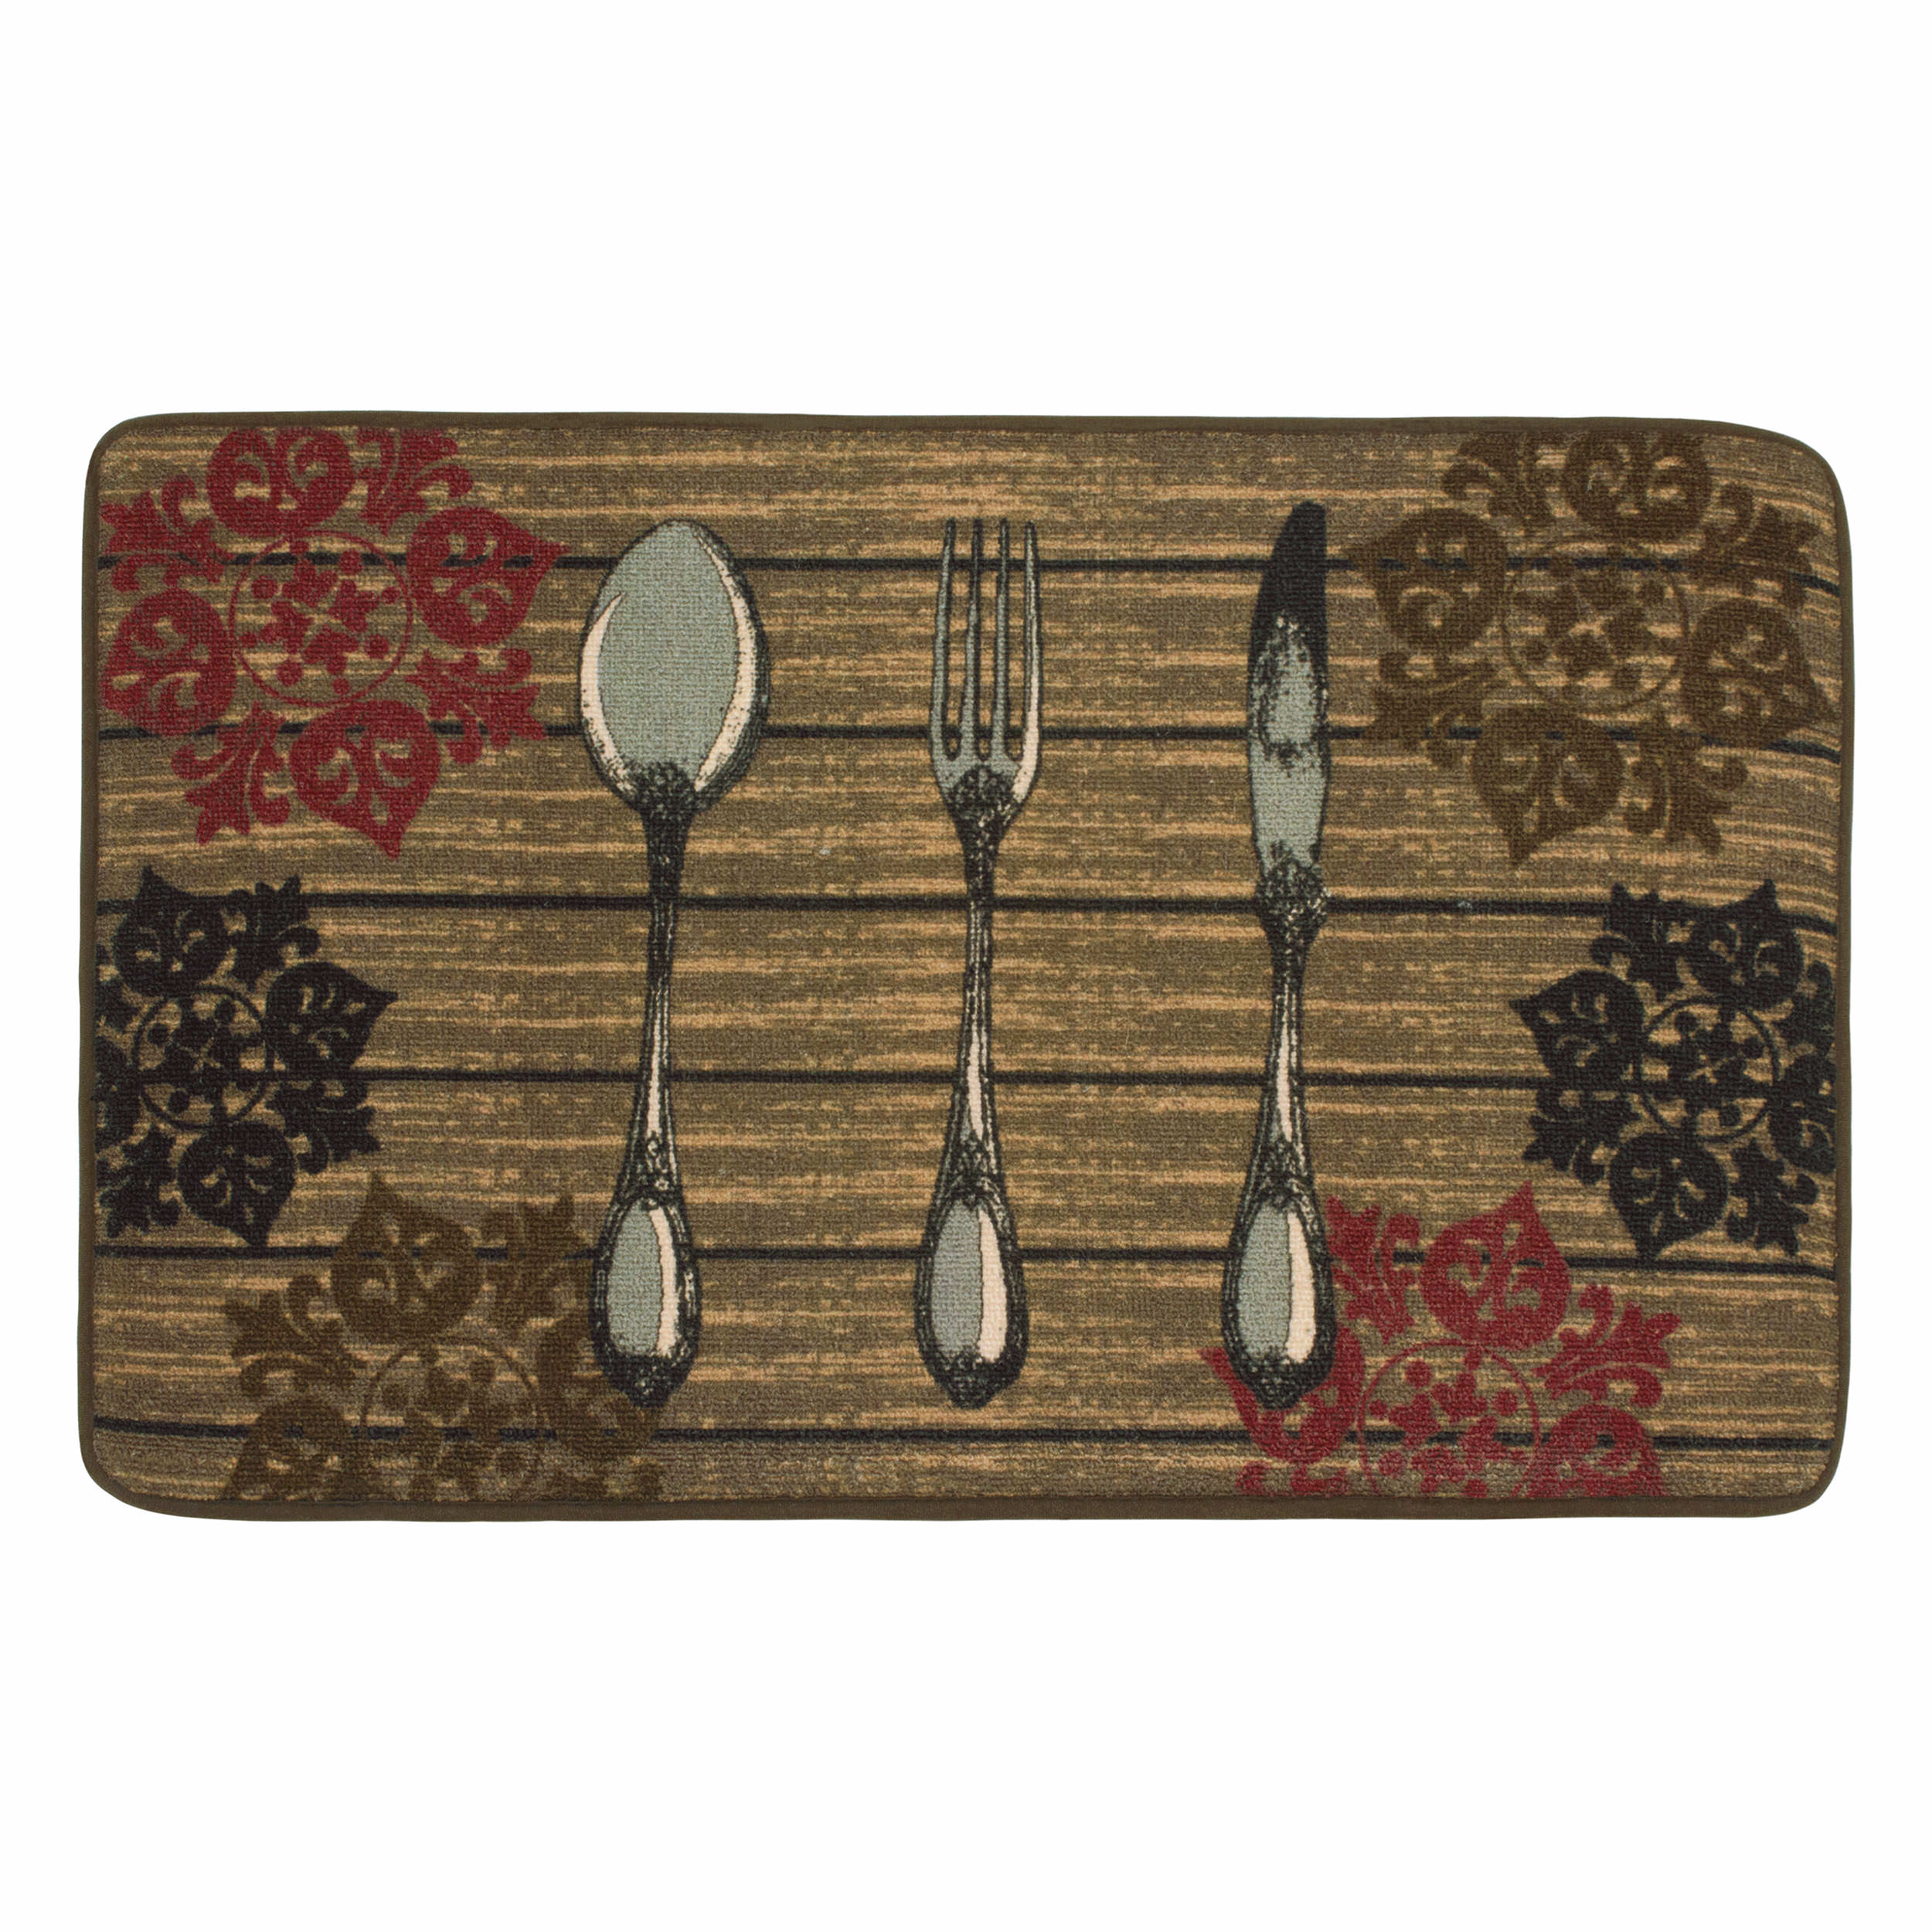 Chef Gear HD Printed 20 x 32 in. Rustic Utensils Kitchen Rug, Chocolate